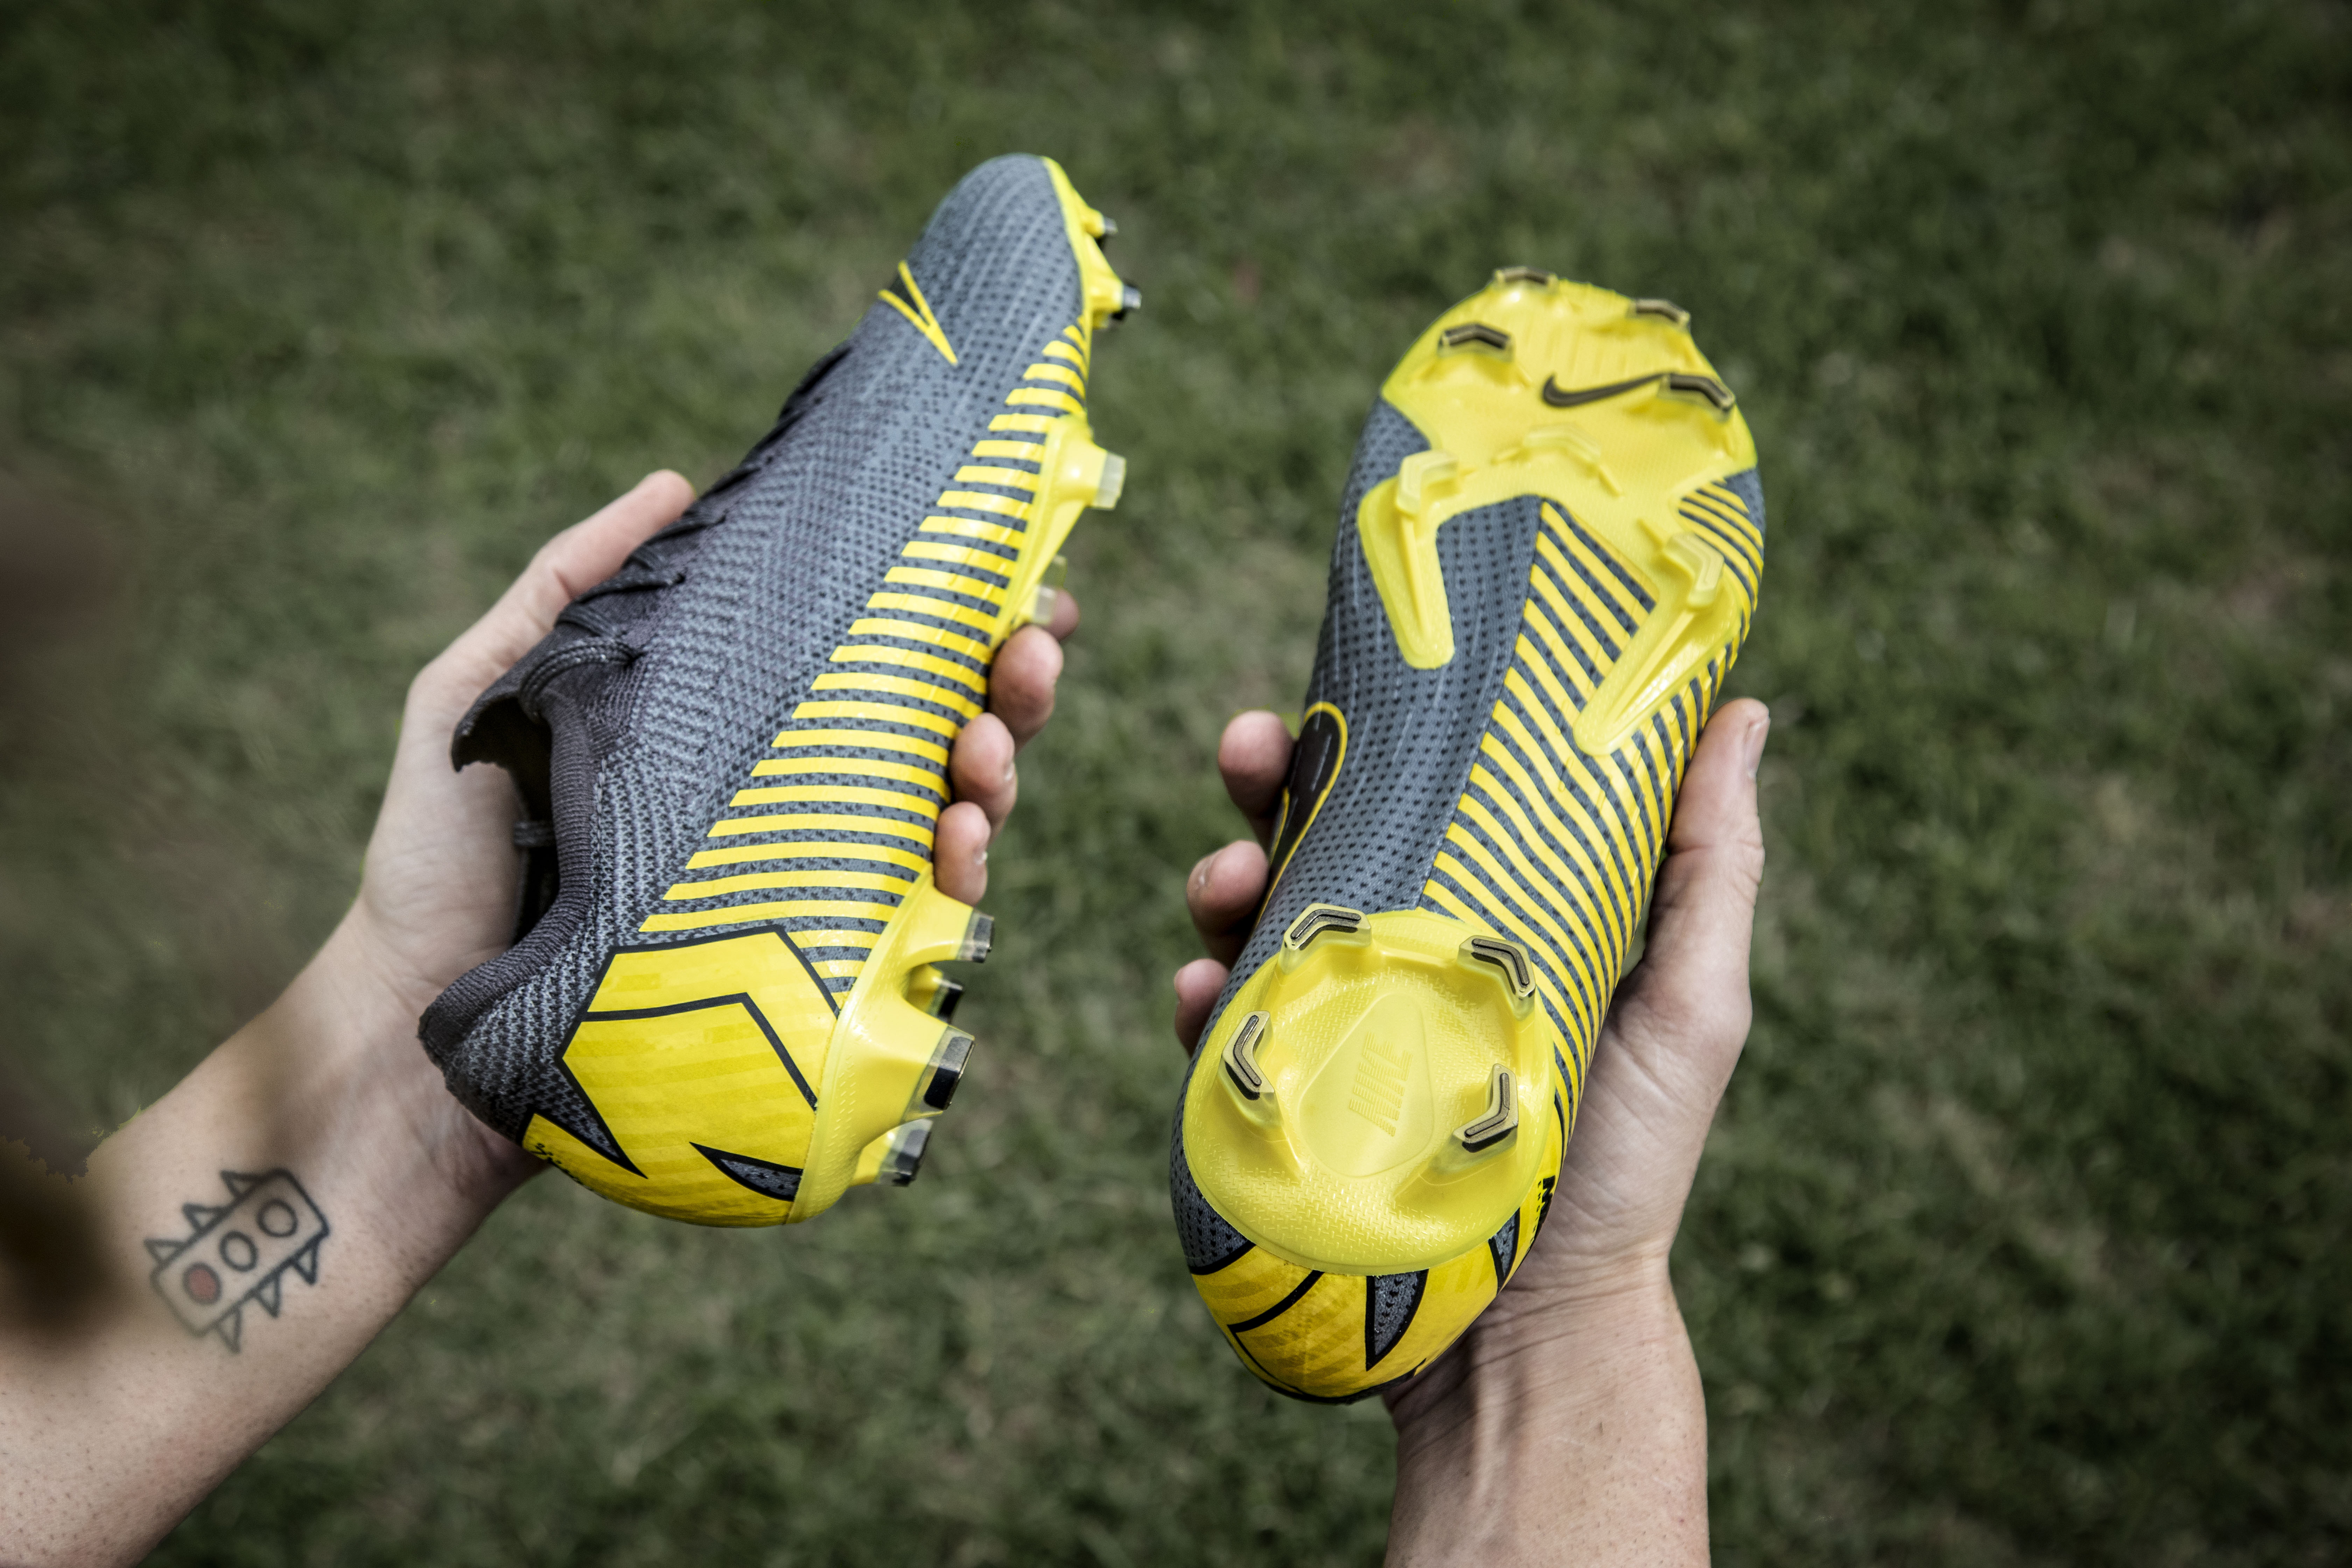 The Nike Mercurial Vapor